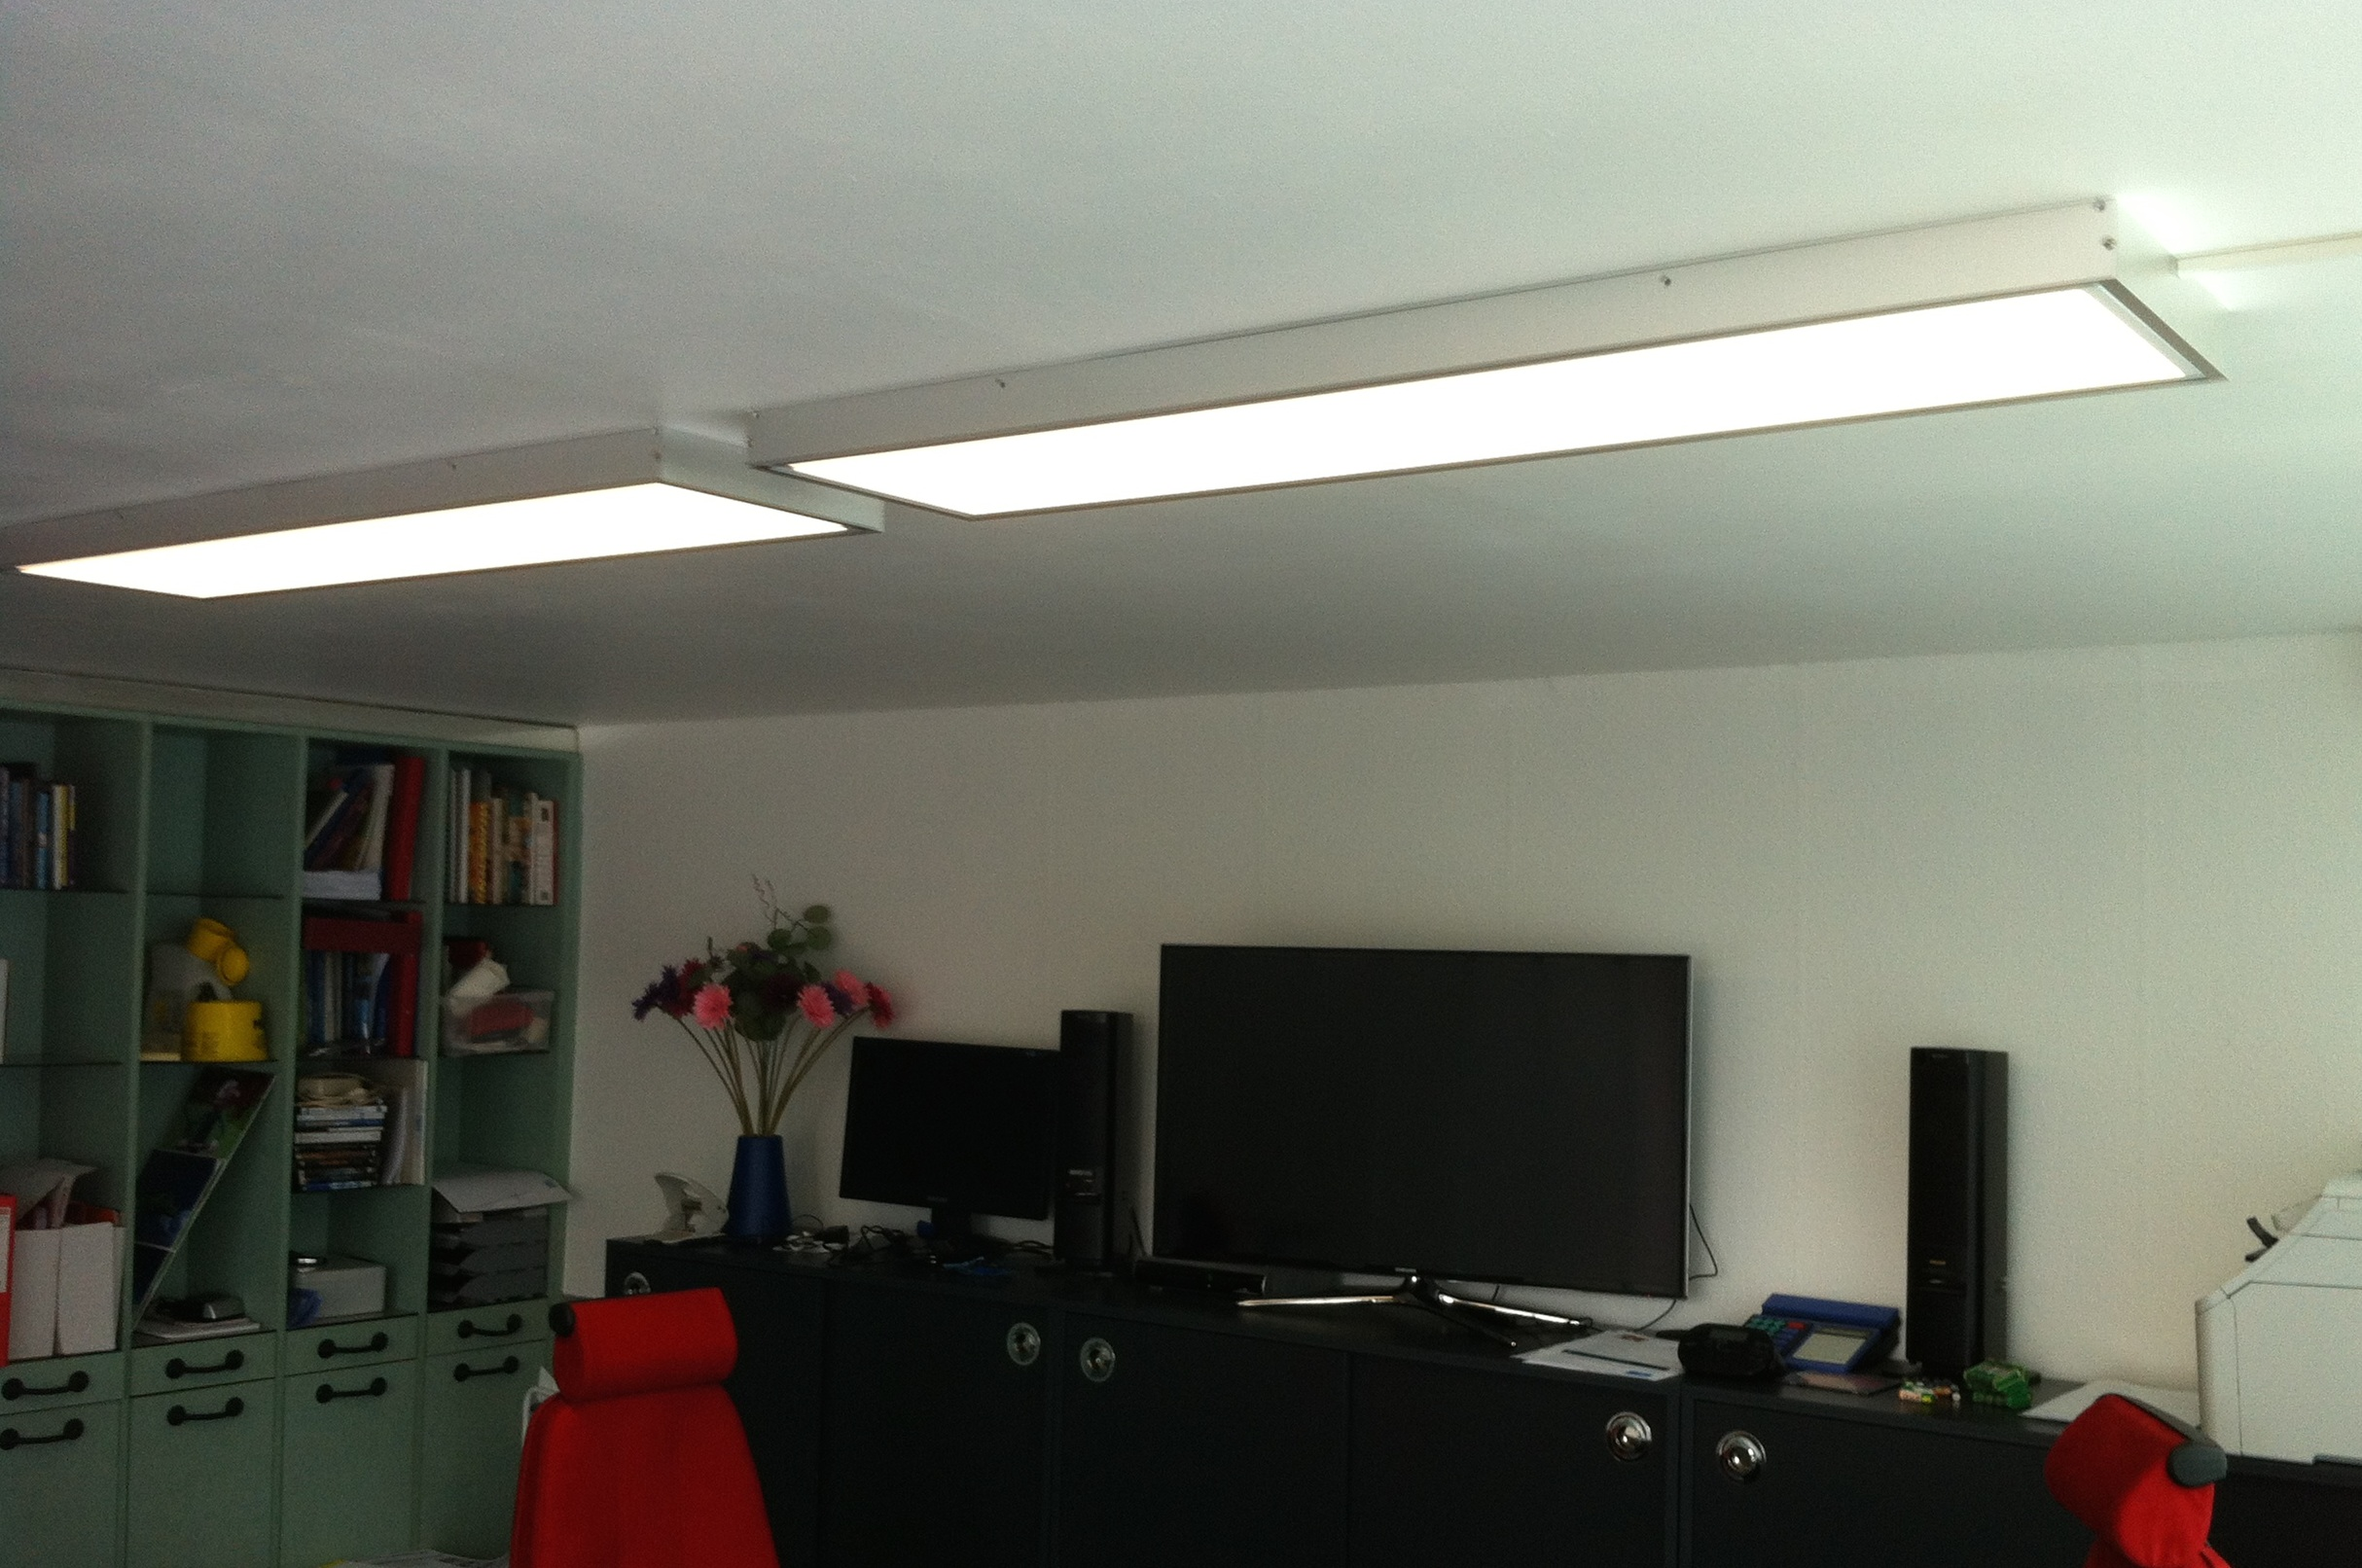 BNR Products-Tandarts De Boeck-Mol - Led panelen